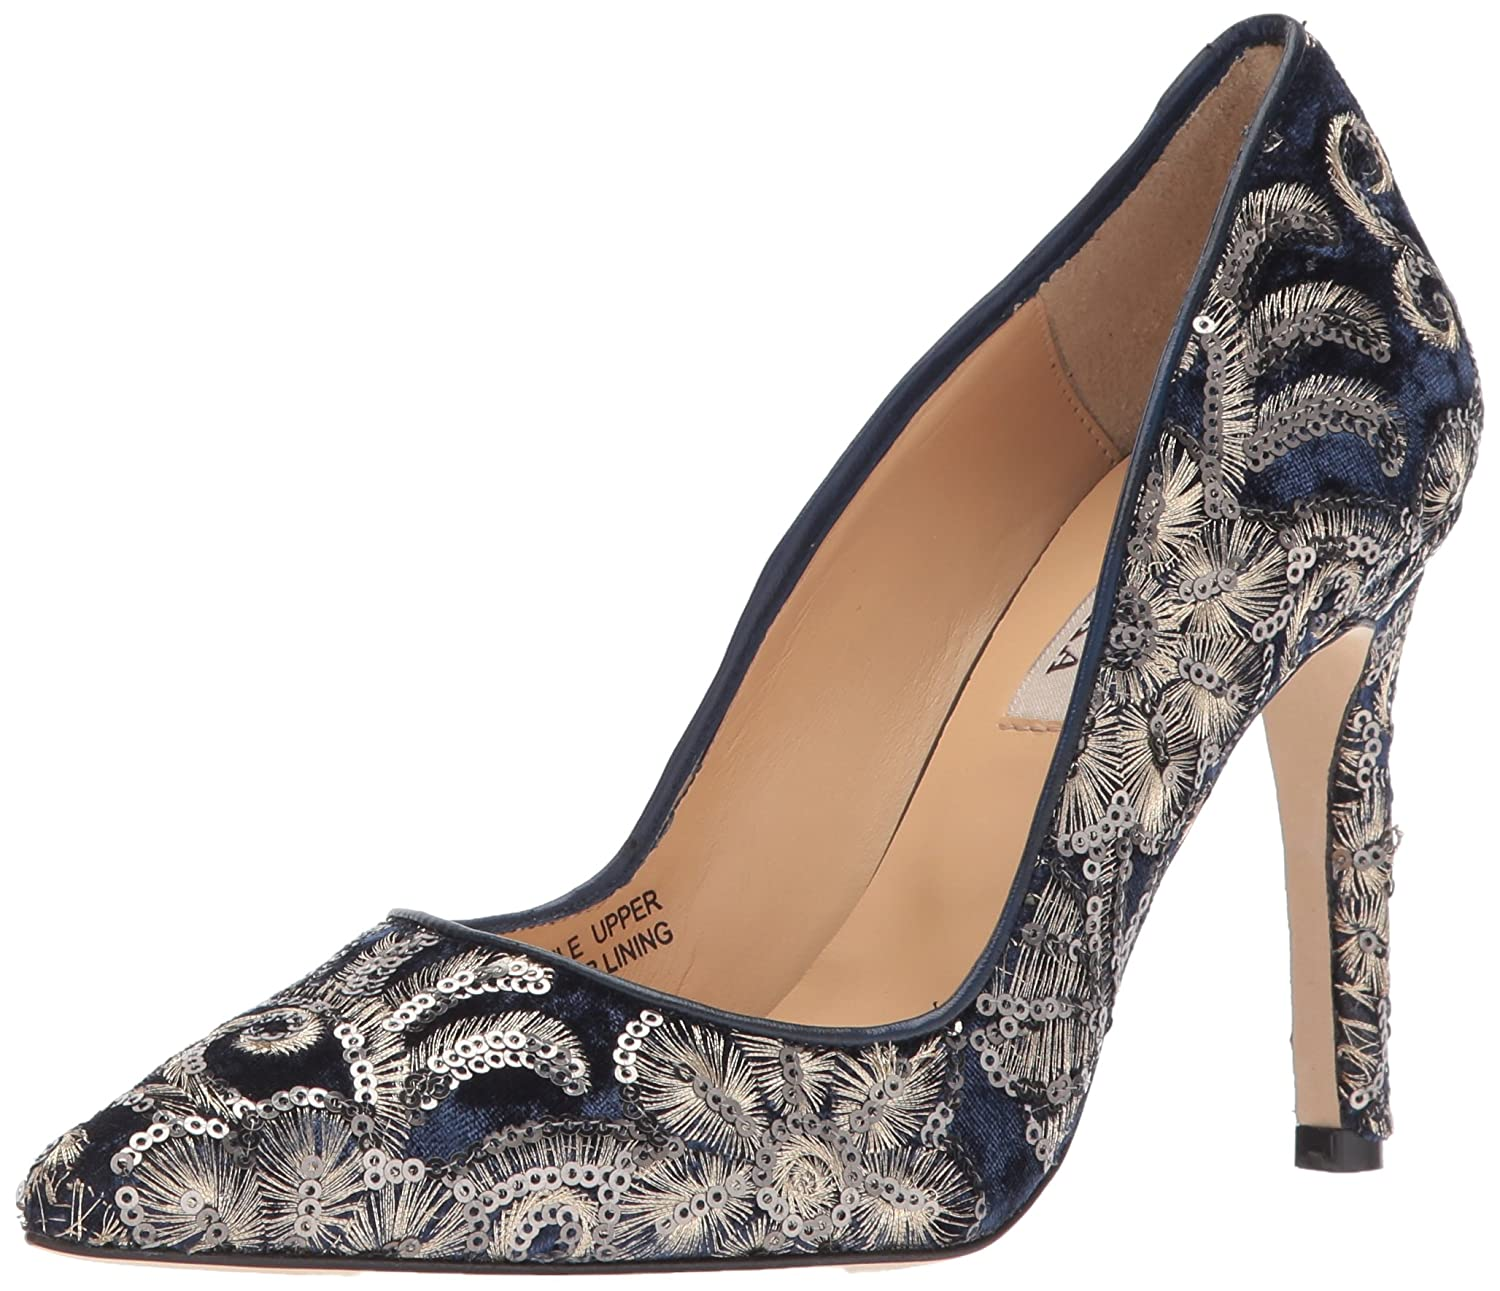 Badgley Mischka Women's Marilou Pump B073C2TWQL 7 B(M) US|Navy